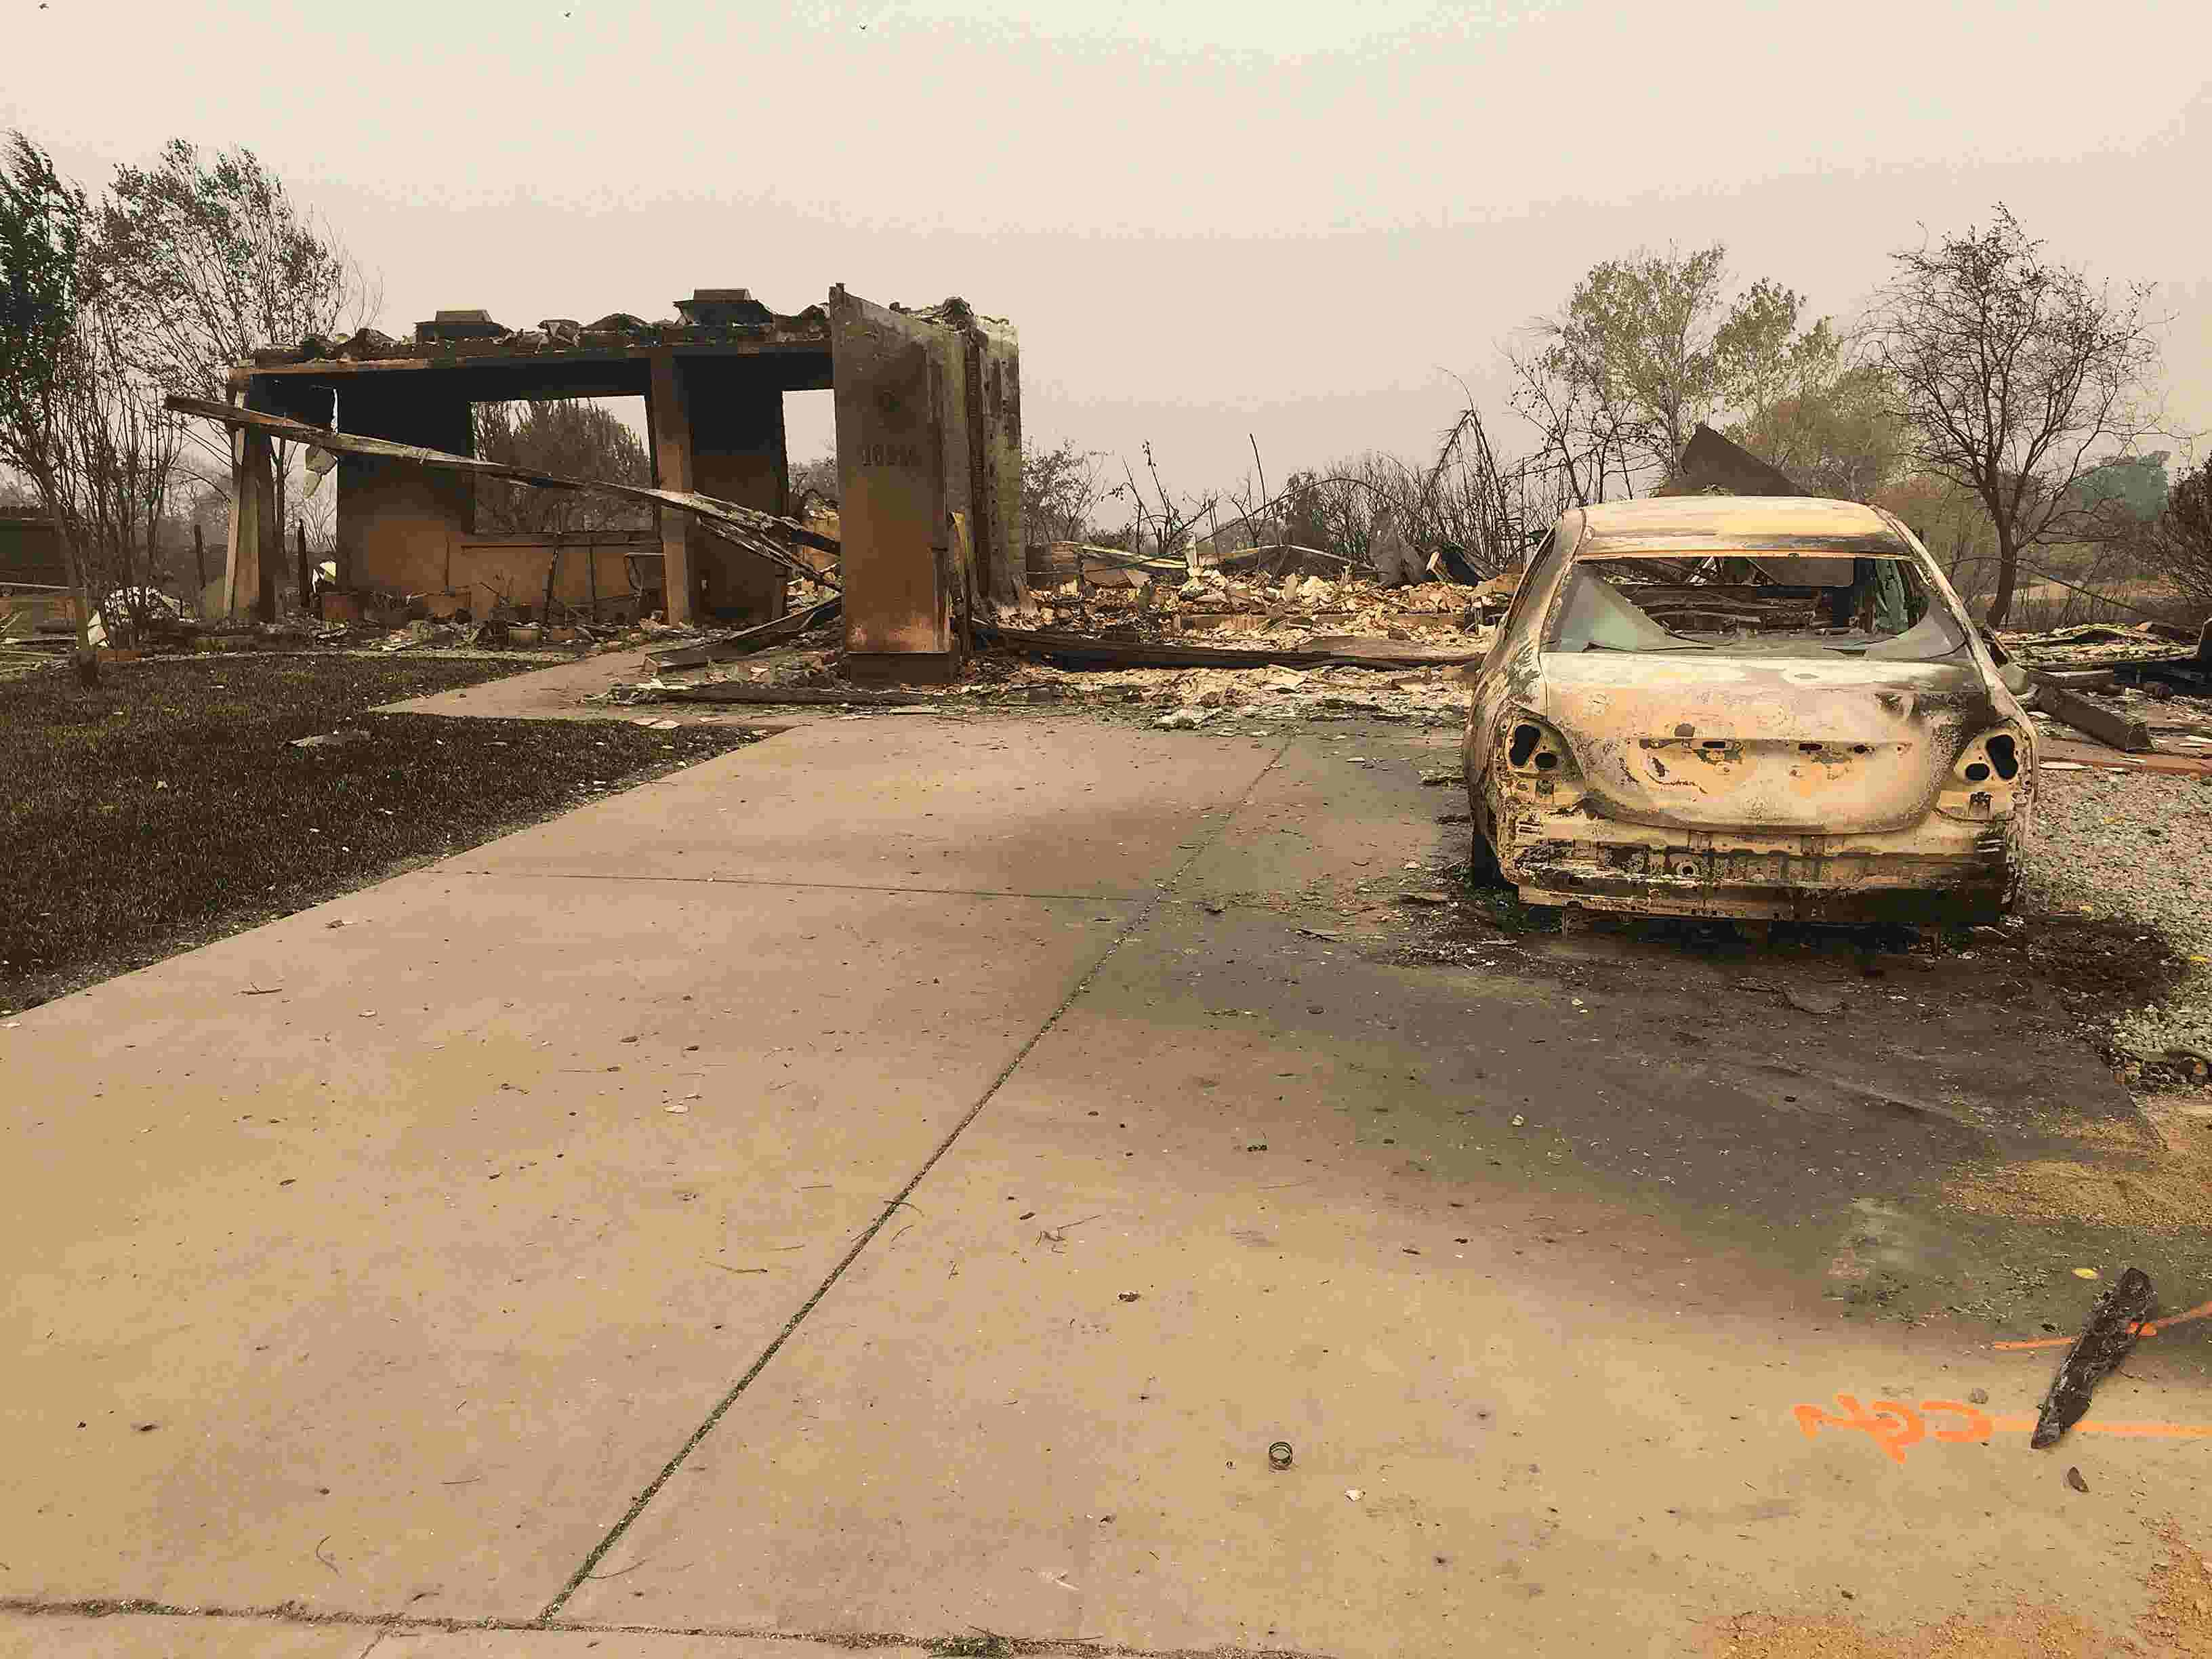 California Mendocino fire 2nd-largest in state history